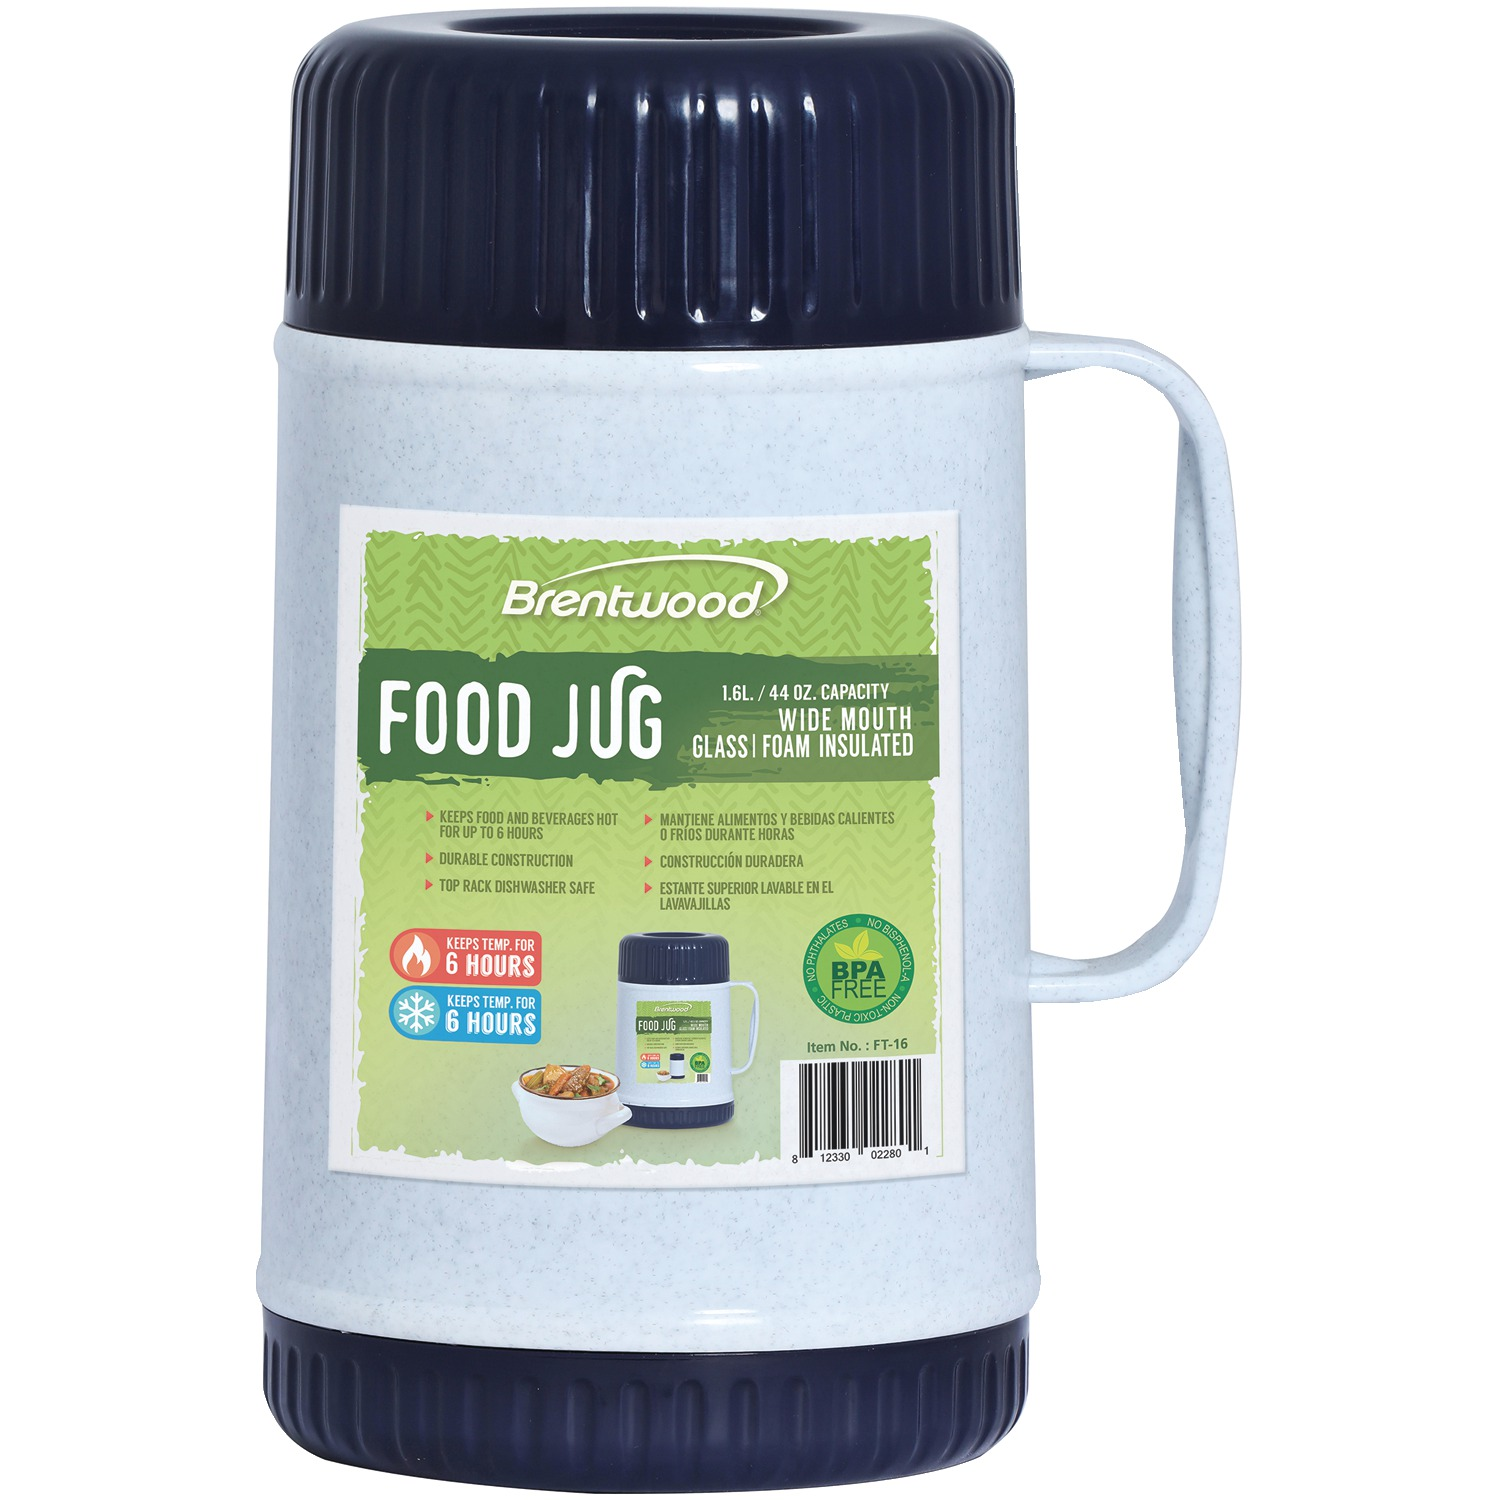 Brentwood Appliances FT-16 44-ounce Food Jug